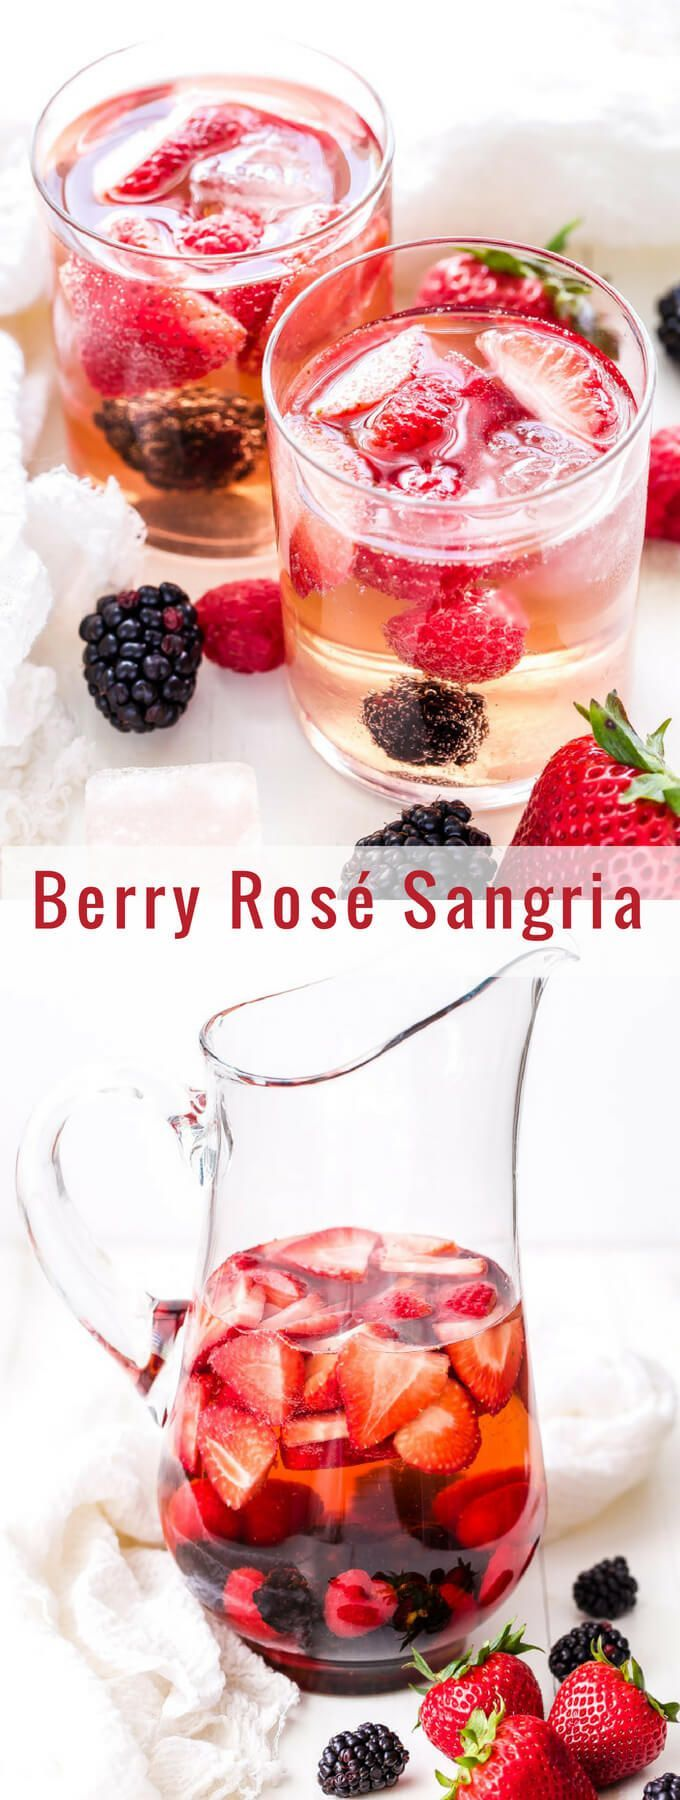 Berry Rose Sangria Is The Perfect Summer Sipper Sweet But Not Too Sweet And Loaded With Fresh Berries It W Sangria Recipes Easy Sangria Recipes Rose Sangria